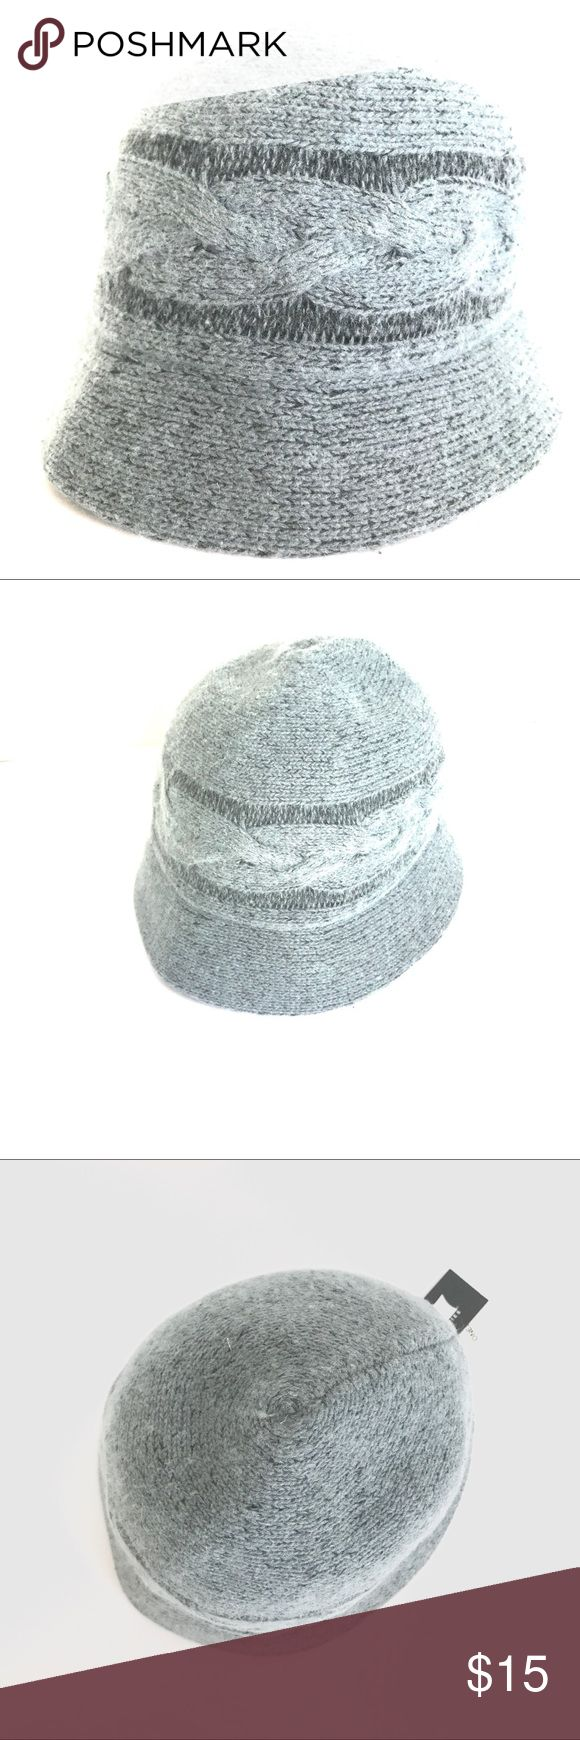 "August Gray Wool Blend Cloche Hat August Gray Wool Blend Cloche Hat, NWT, smoke free home.   Circumference : 23"" August Hats Accessories Hats"